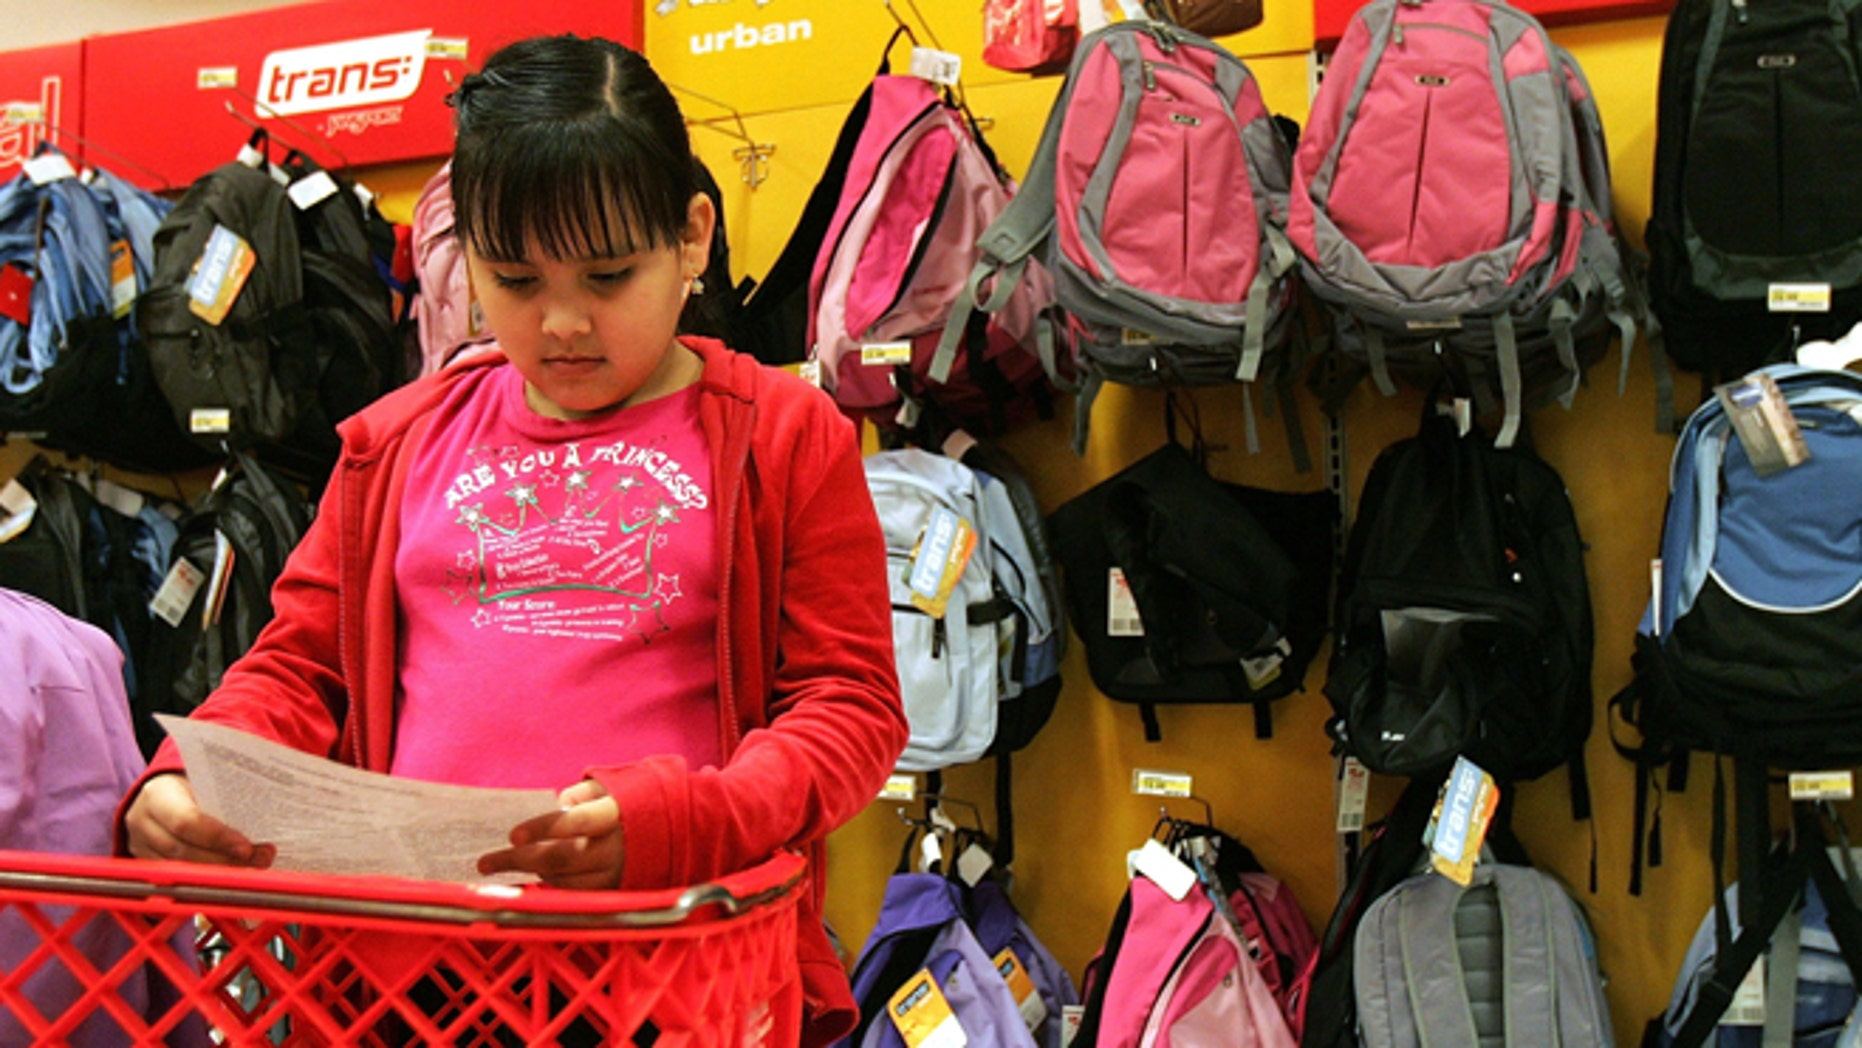 ROSEMONT, IL - AUGUST 11:  Patricia Zaragoza, 9, checks her back-to-school shopping list at a Target store August 11, 2005 in Rosemont, Illinois. With the start of school nearing, retailers are stocking up in anticipation of back-to-school shoppers.  (Photo by Tim Boyle/Getty Images)